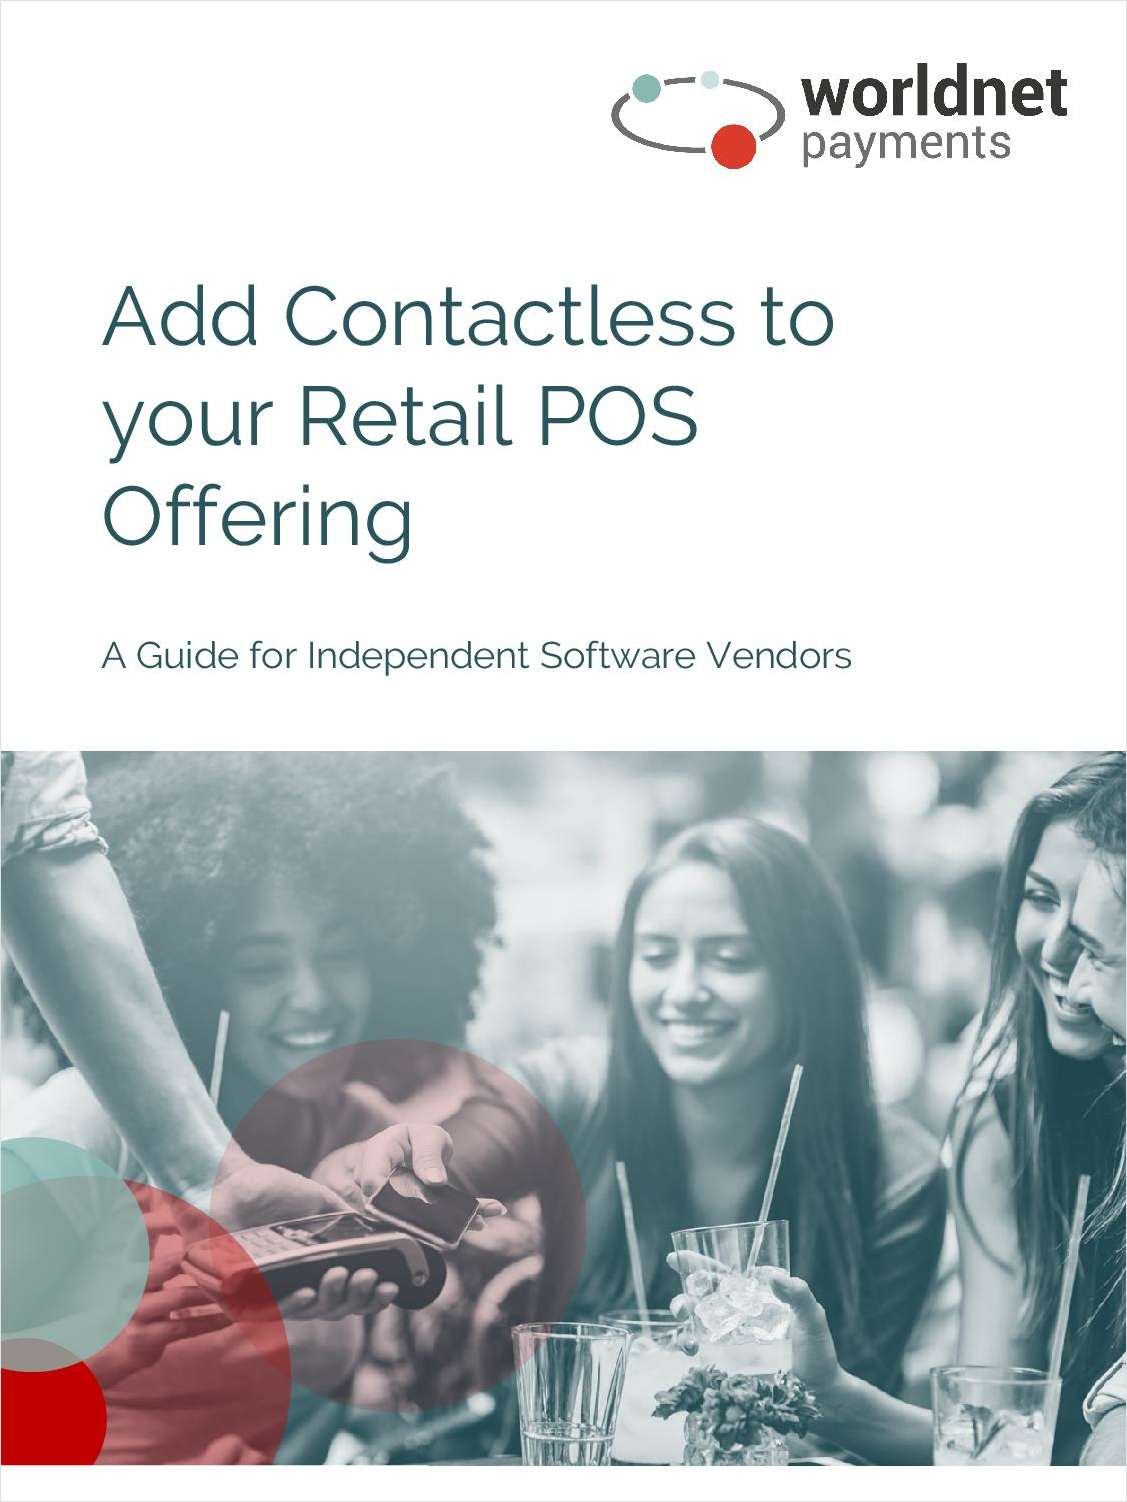 Add Contactless to your Retail POS Offering